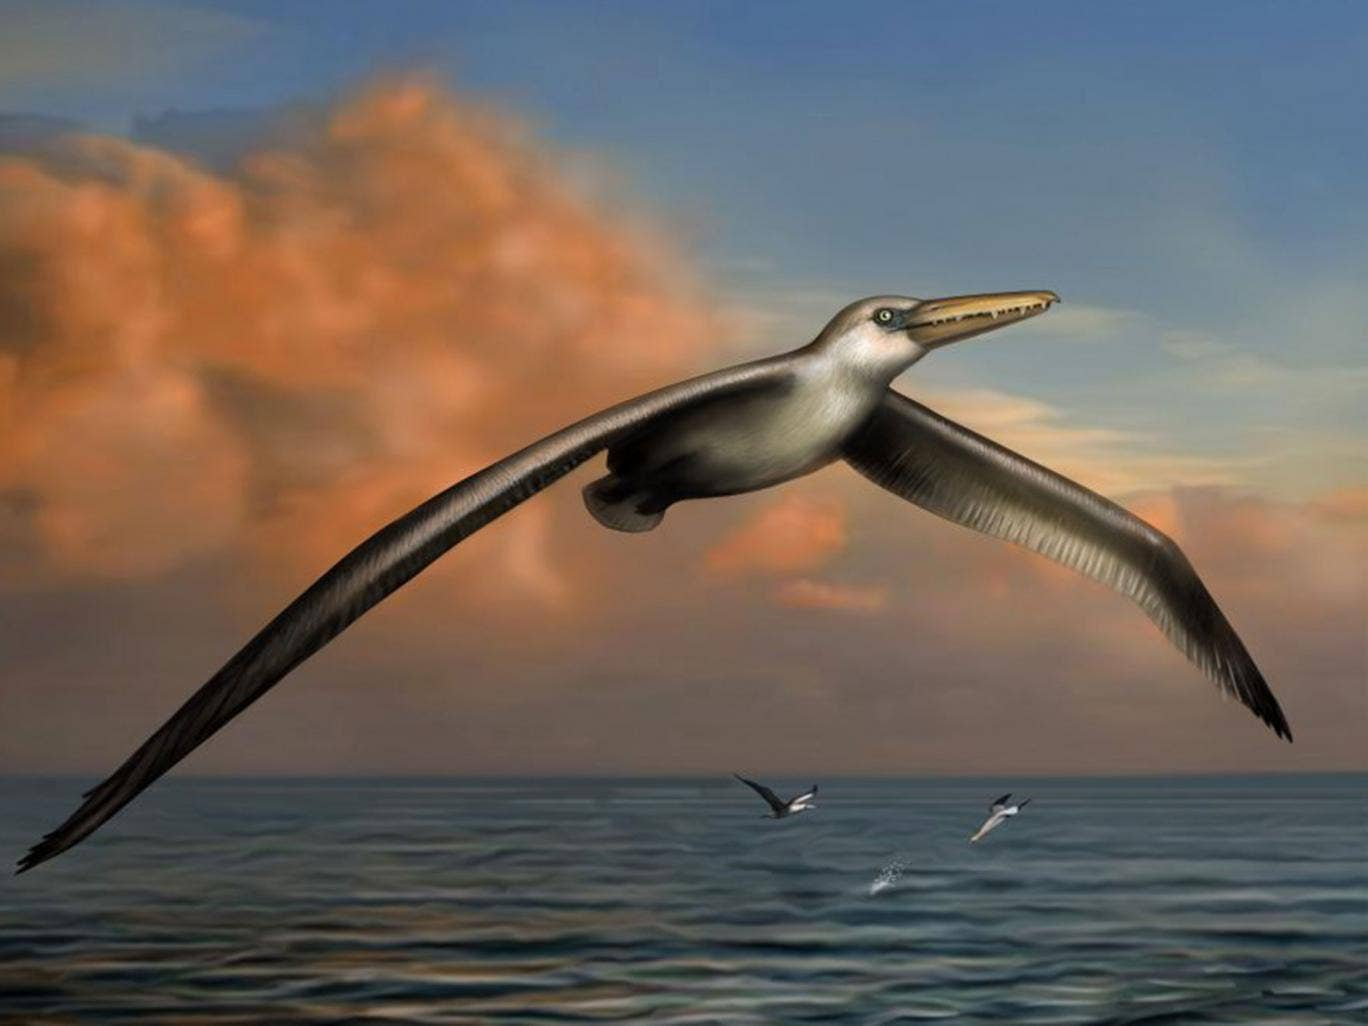 An artist's impression  of Pelagornis sandersi, which could fly great distances